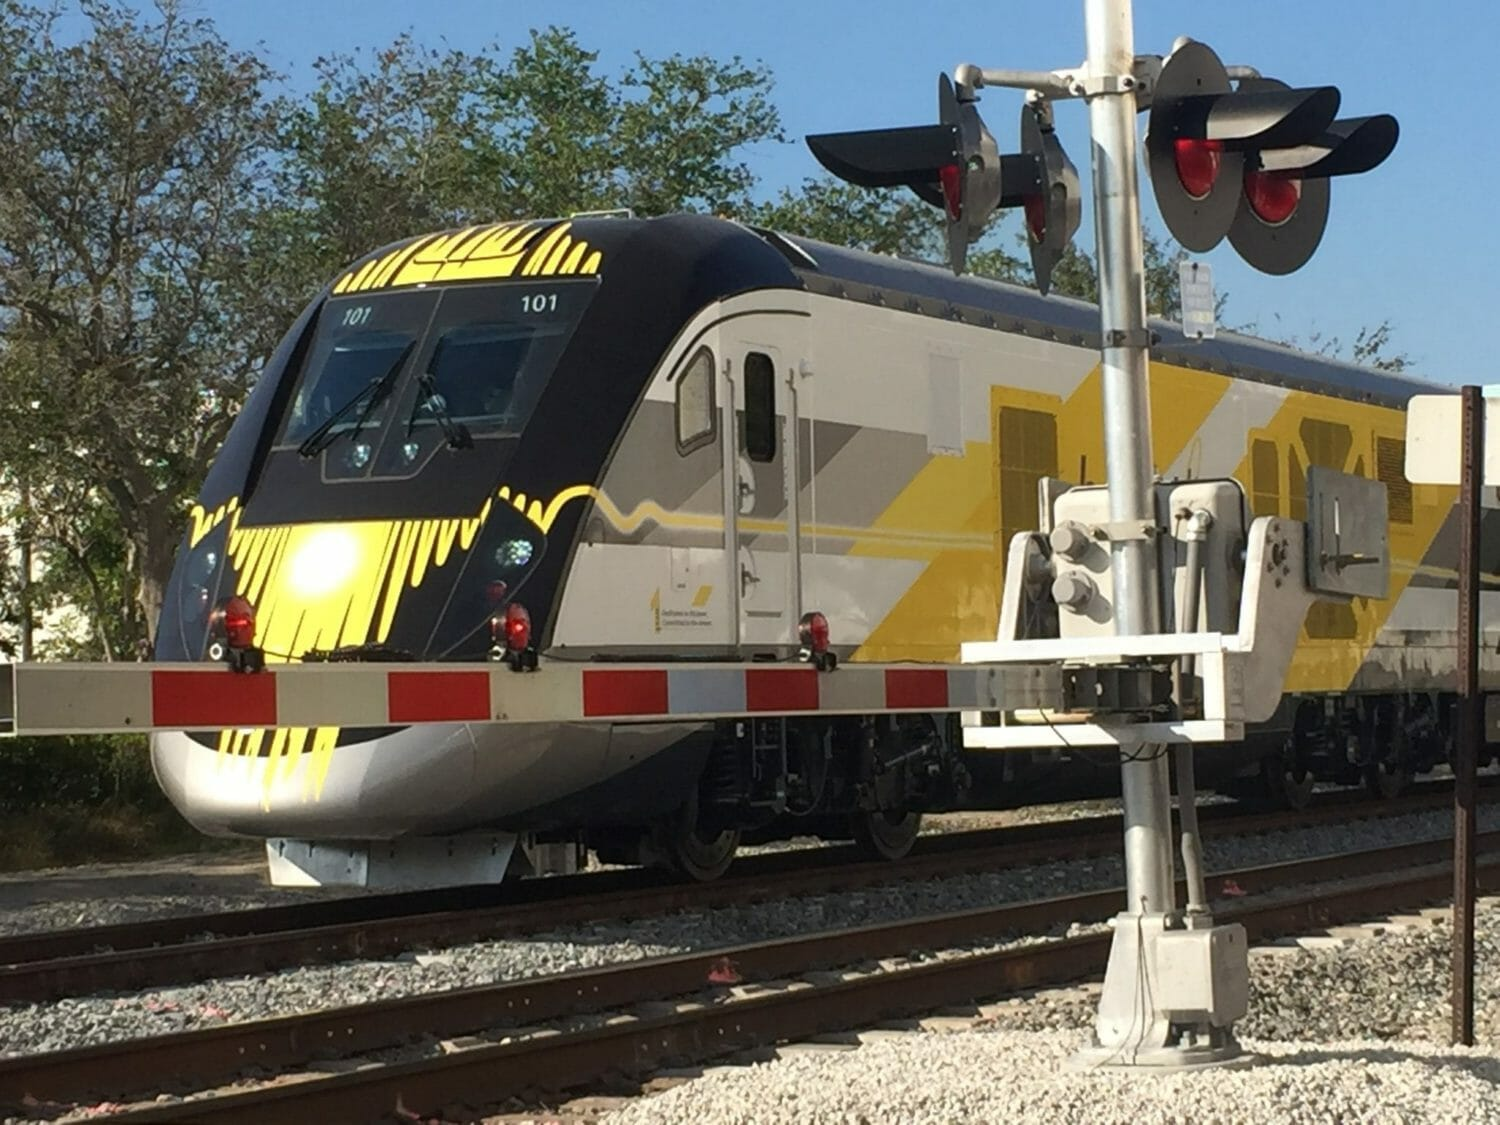 Brightline and FPL announce clean energy partnership